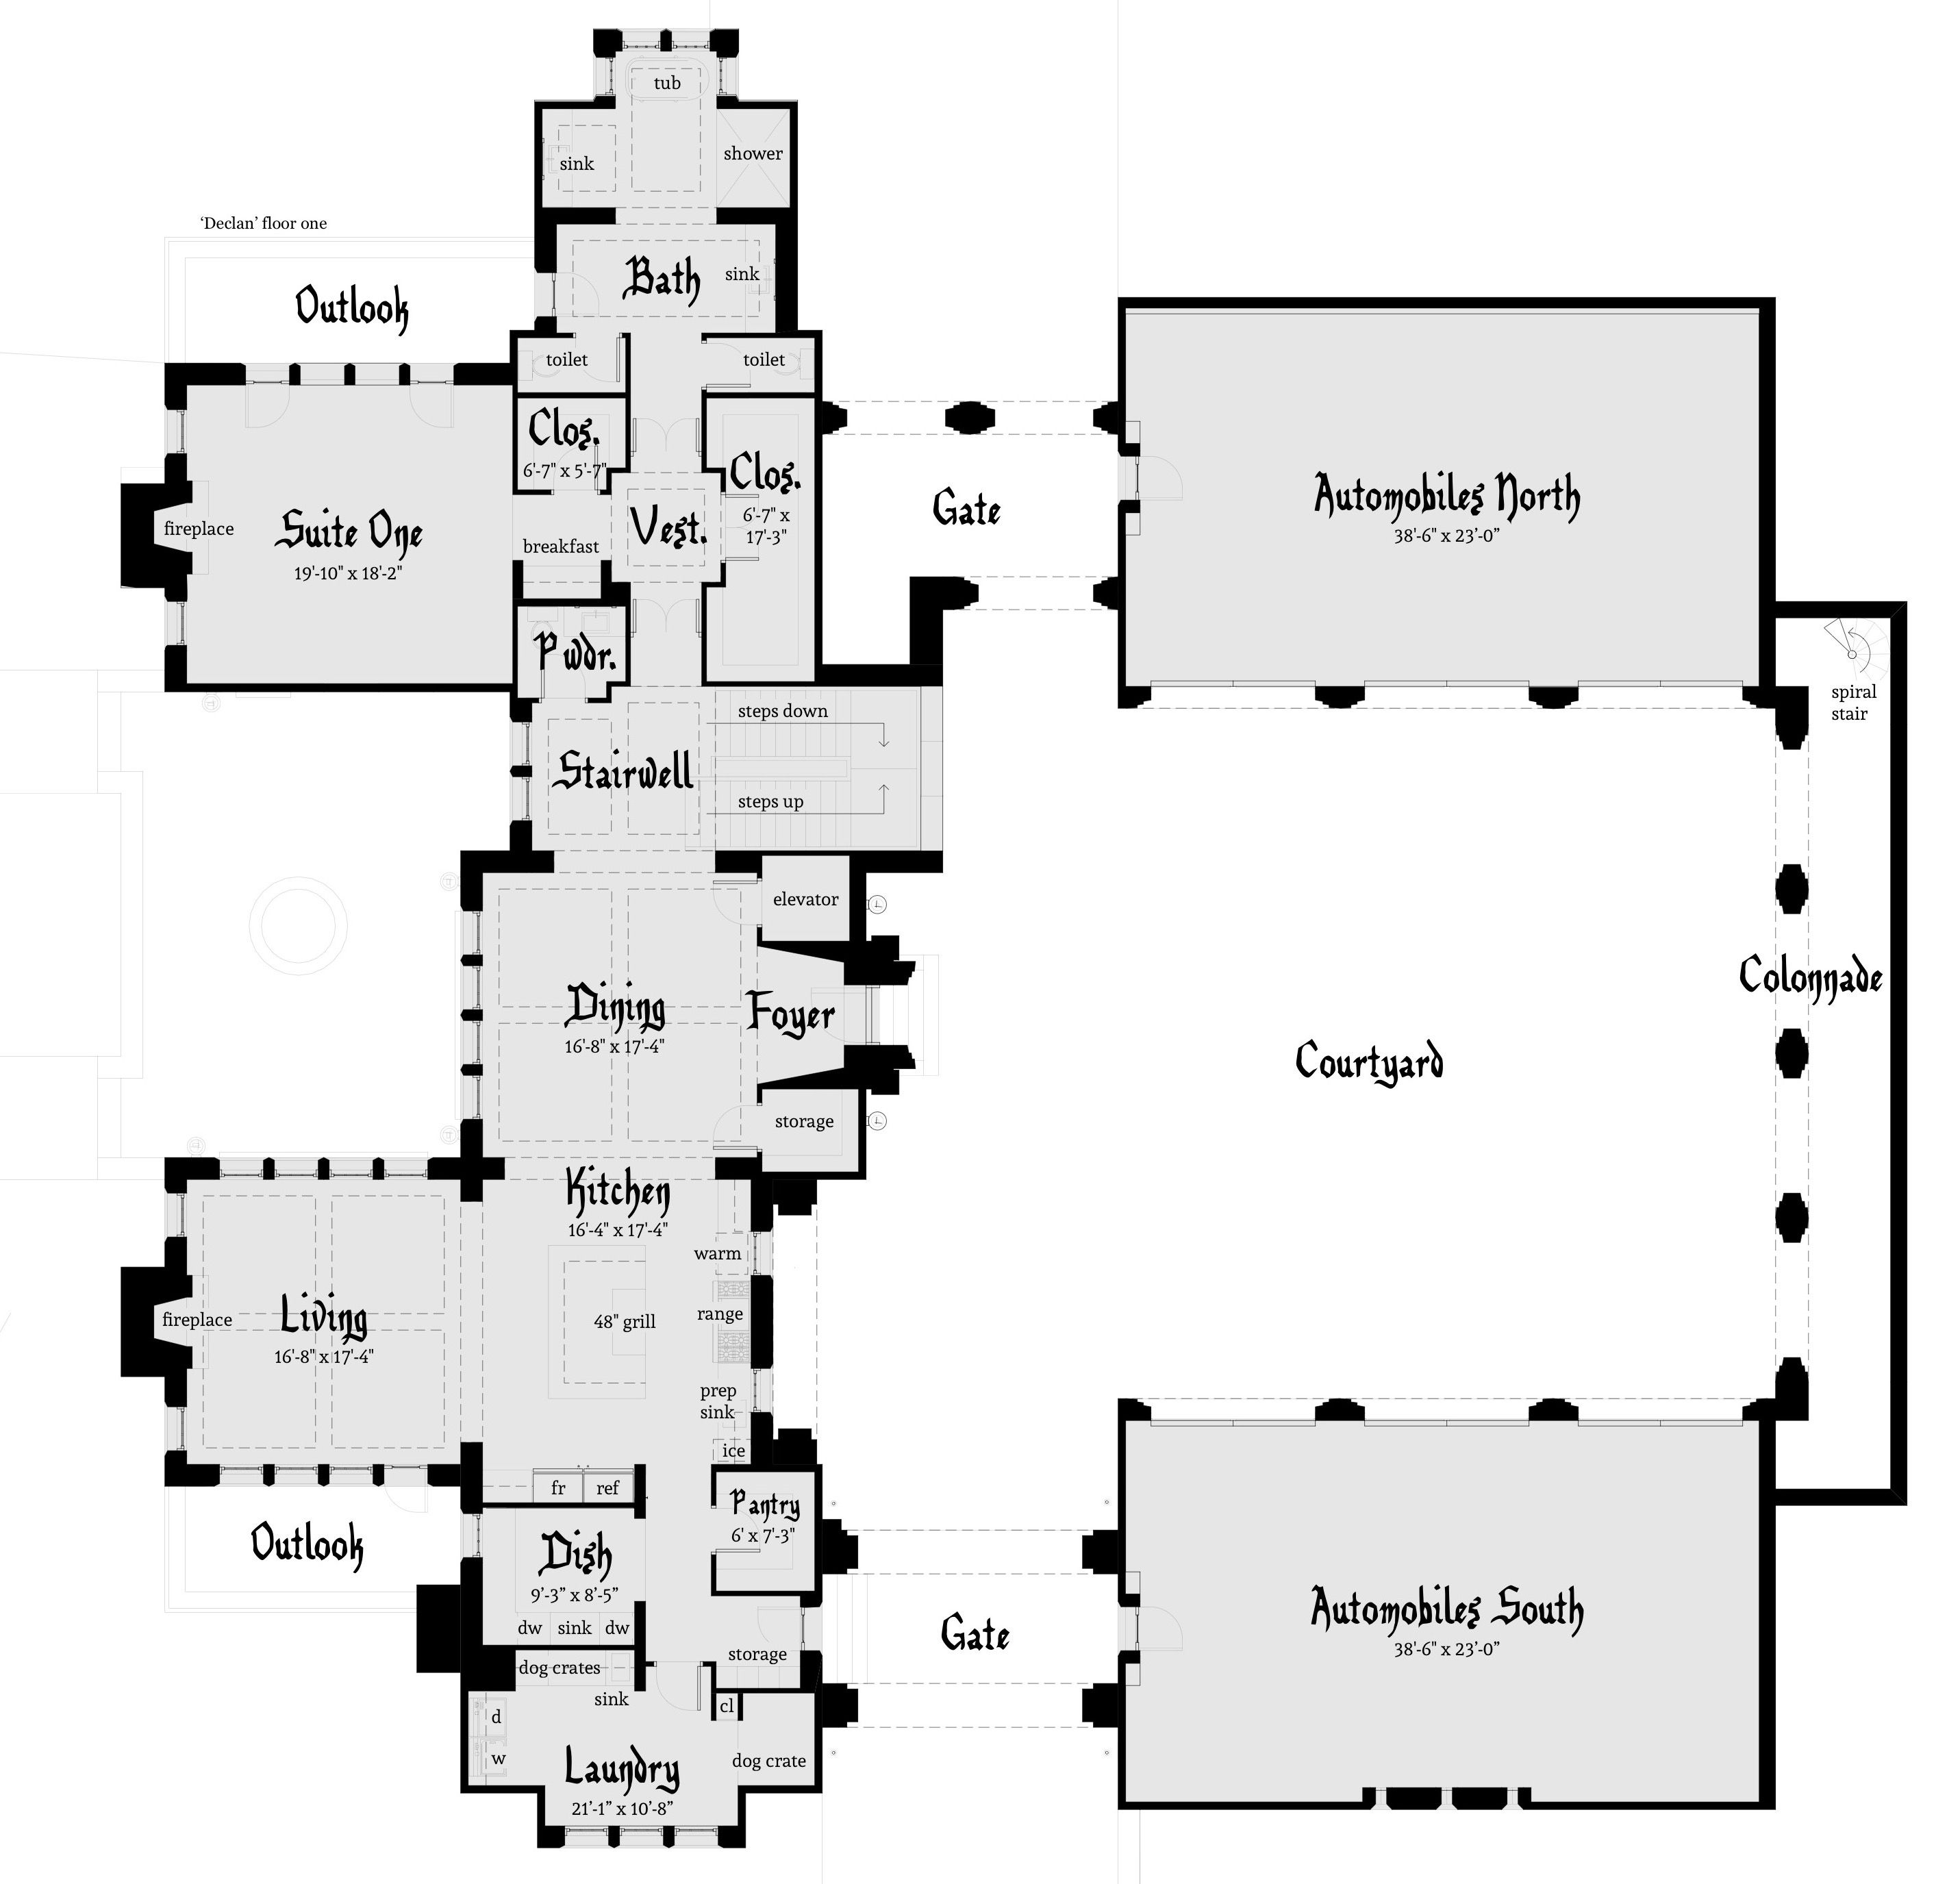 Large Castle Home 6 Car Garage Tyree House Plans Castle House Plans Castle Plans Castle House